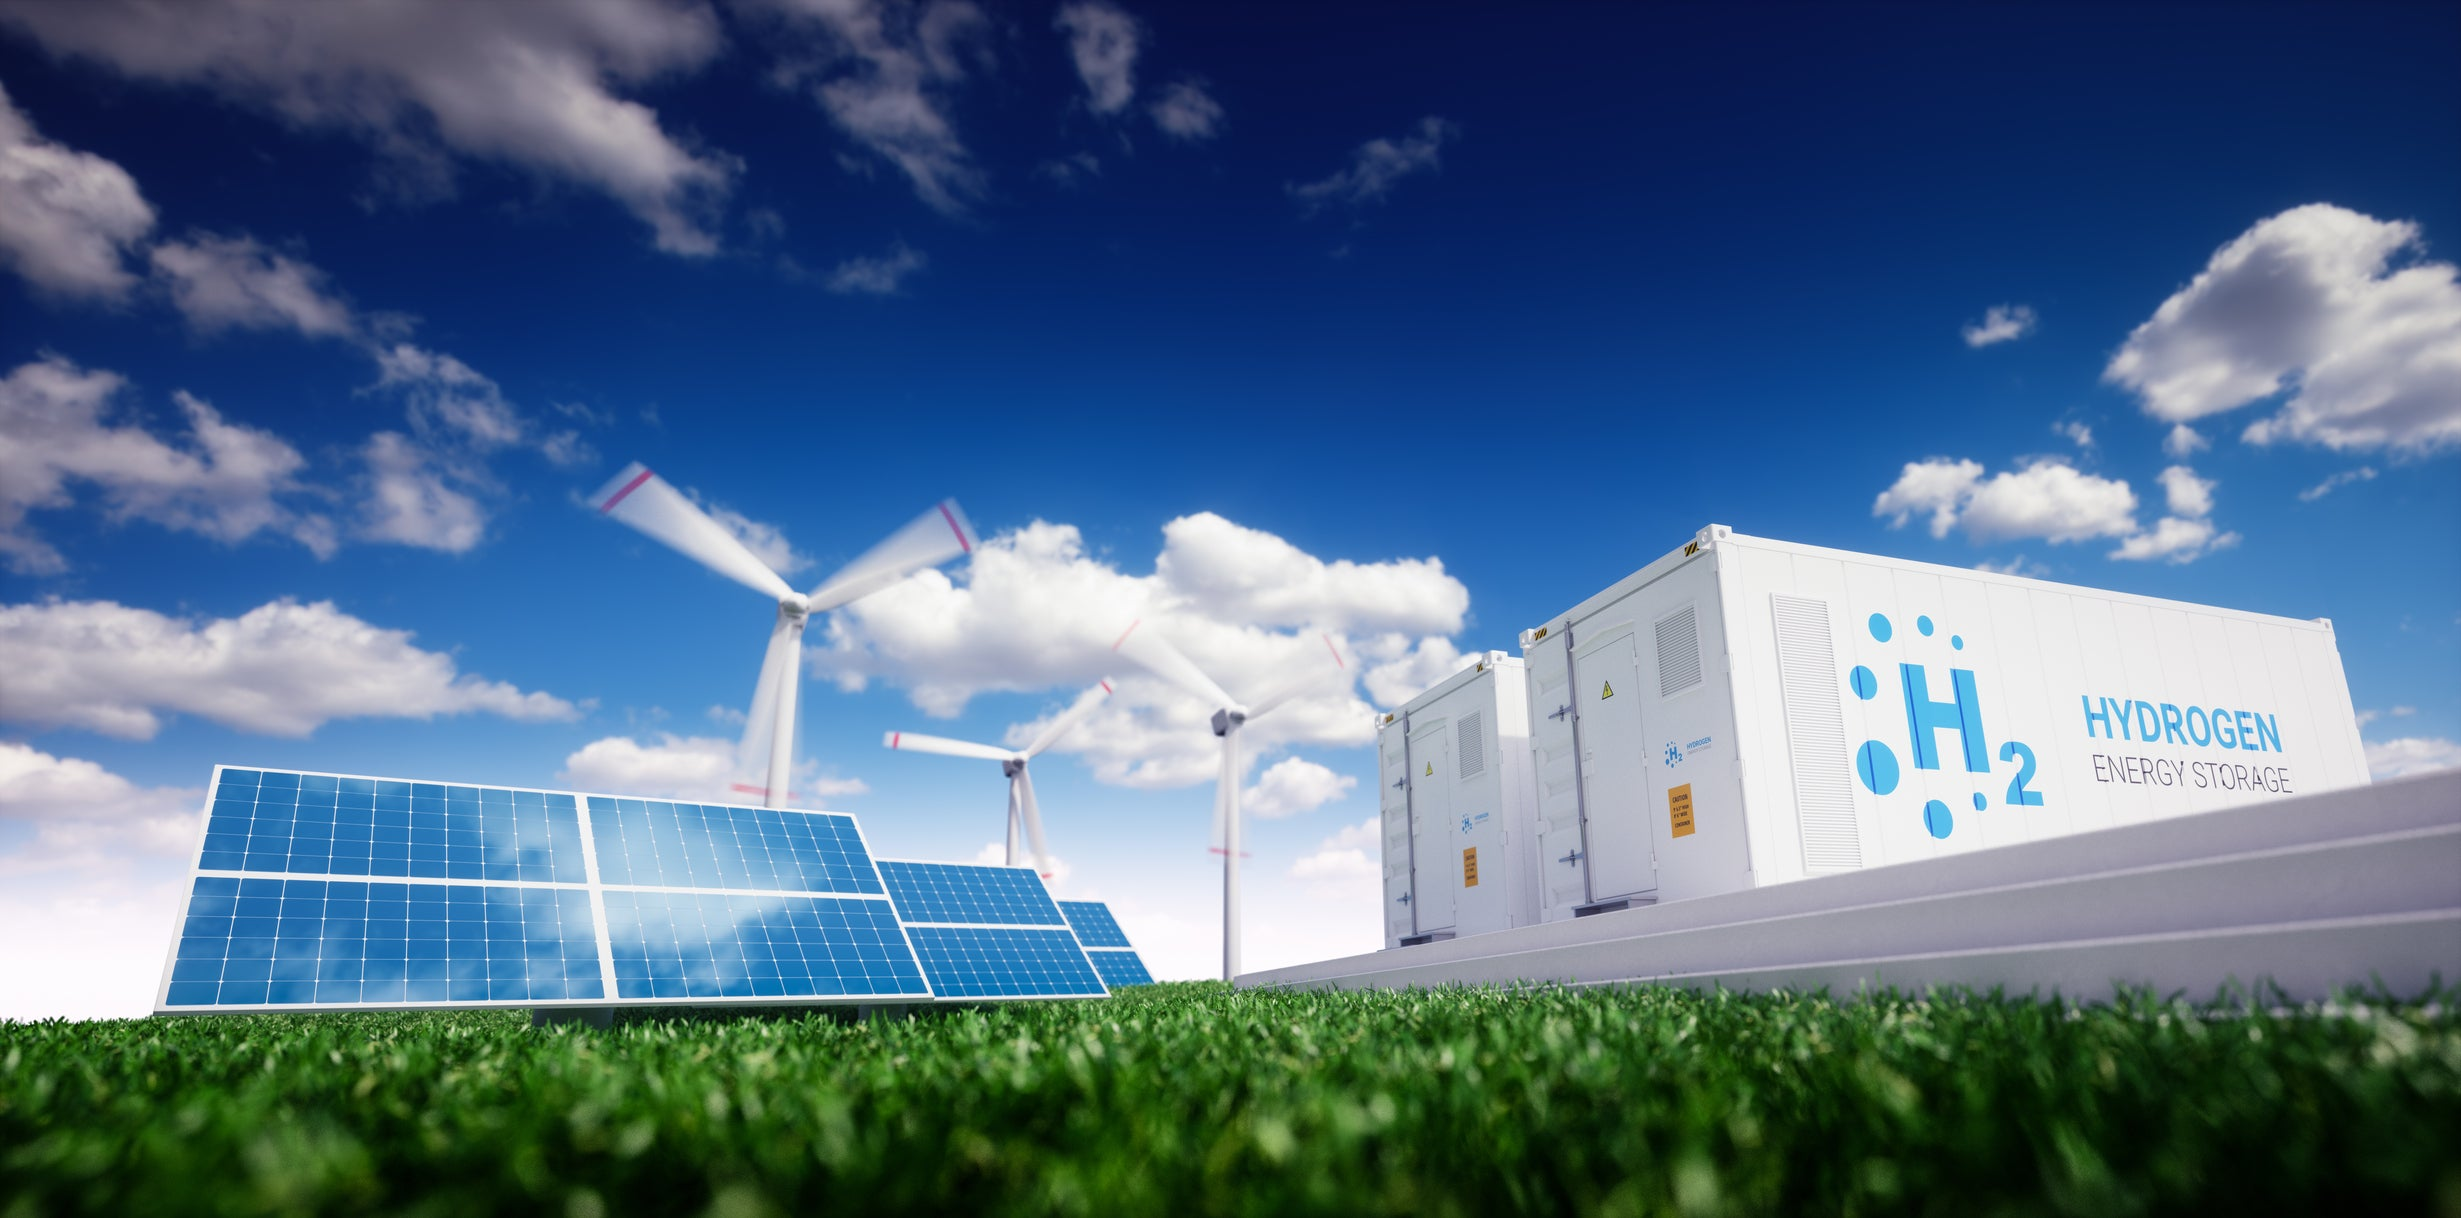 Is FuelCell Energy Stock a Buy?